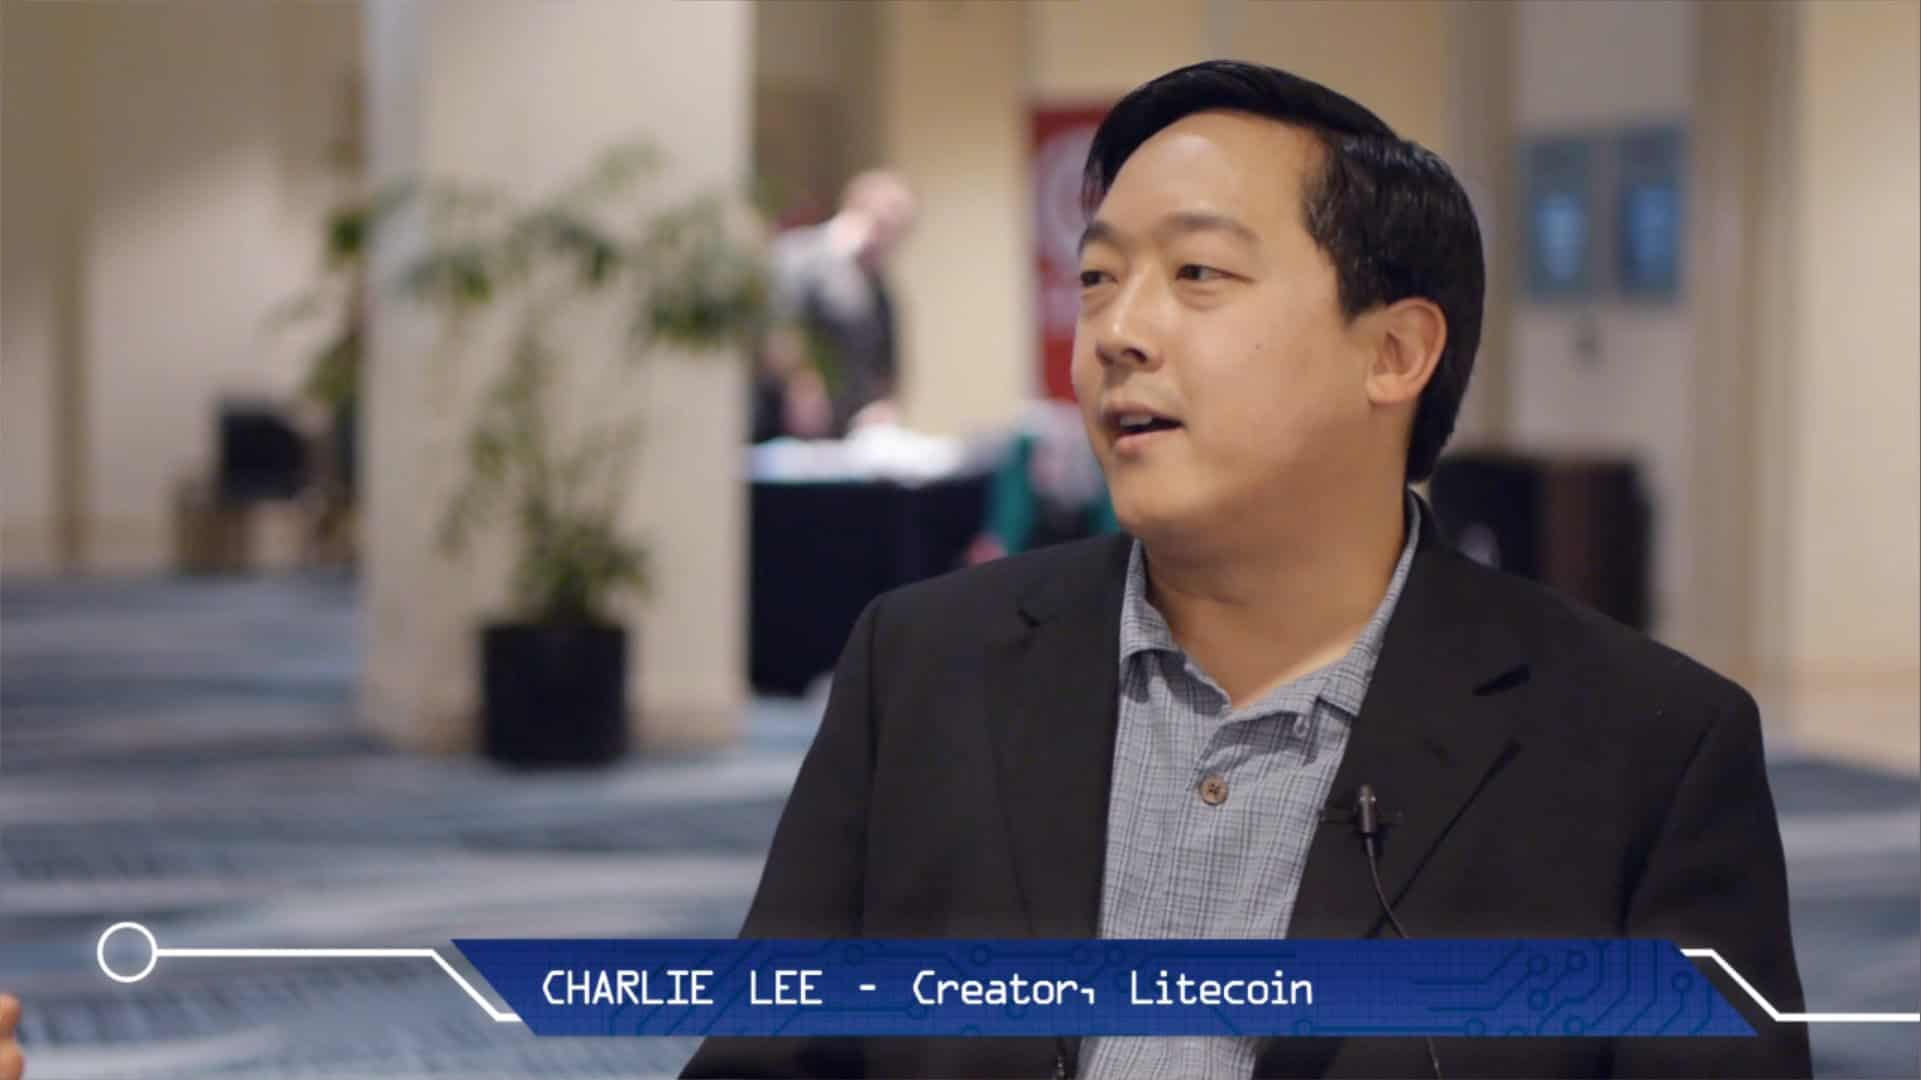 Litecoin Came From Bitcoins Core Code With Some Modifications Charlie Lee Modified The And Protocol In Way He Considered Best Order To Achieve